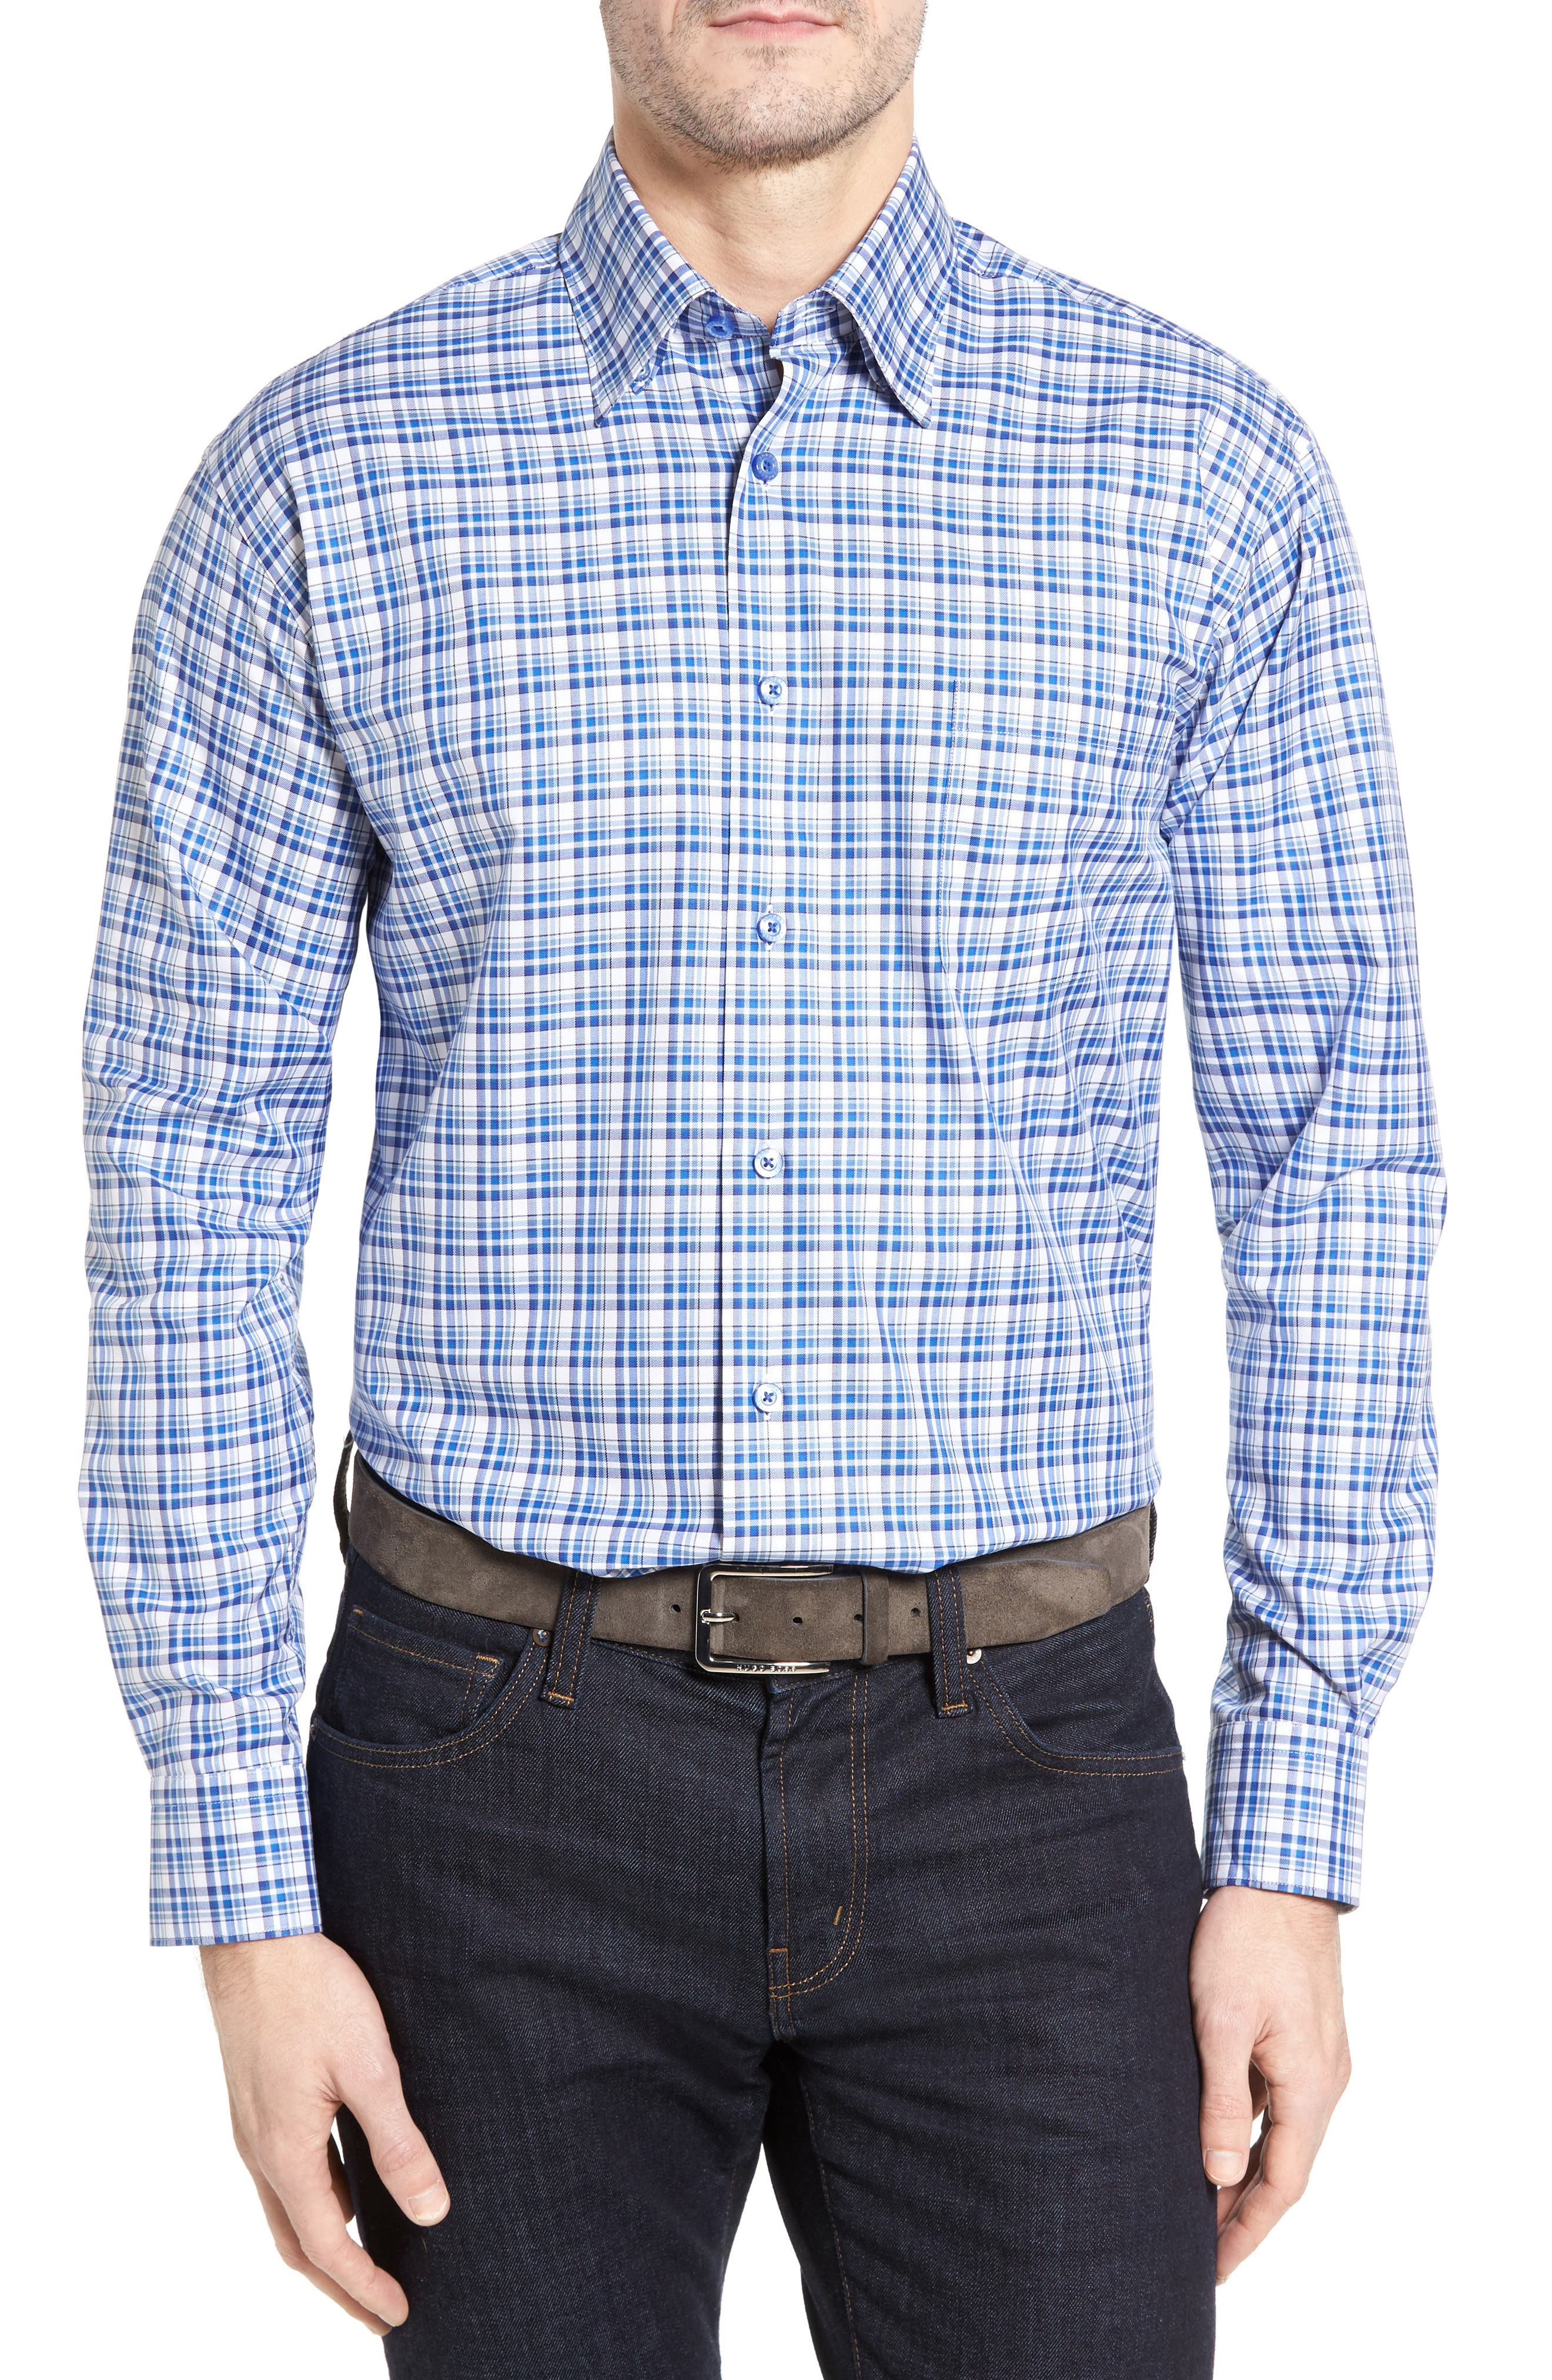 Anderson Classic Fit Plaid Micro Twill Sport Shirt,                             Main thumbnail 1, color,                             417